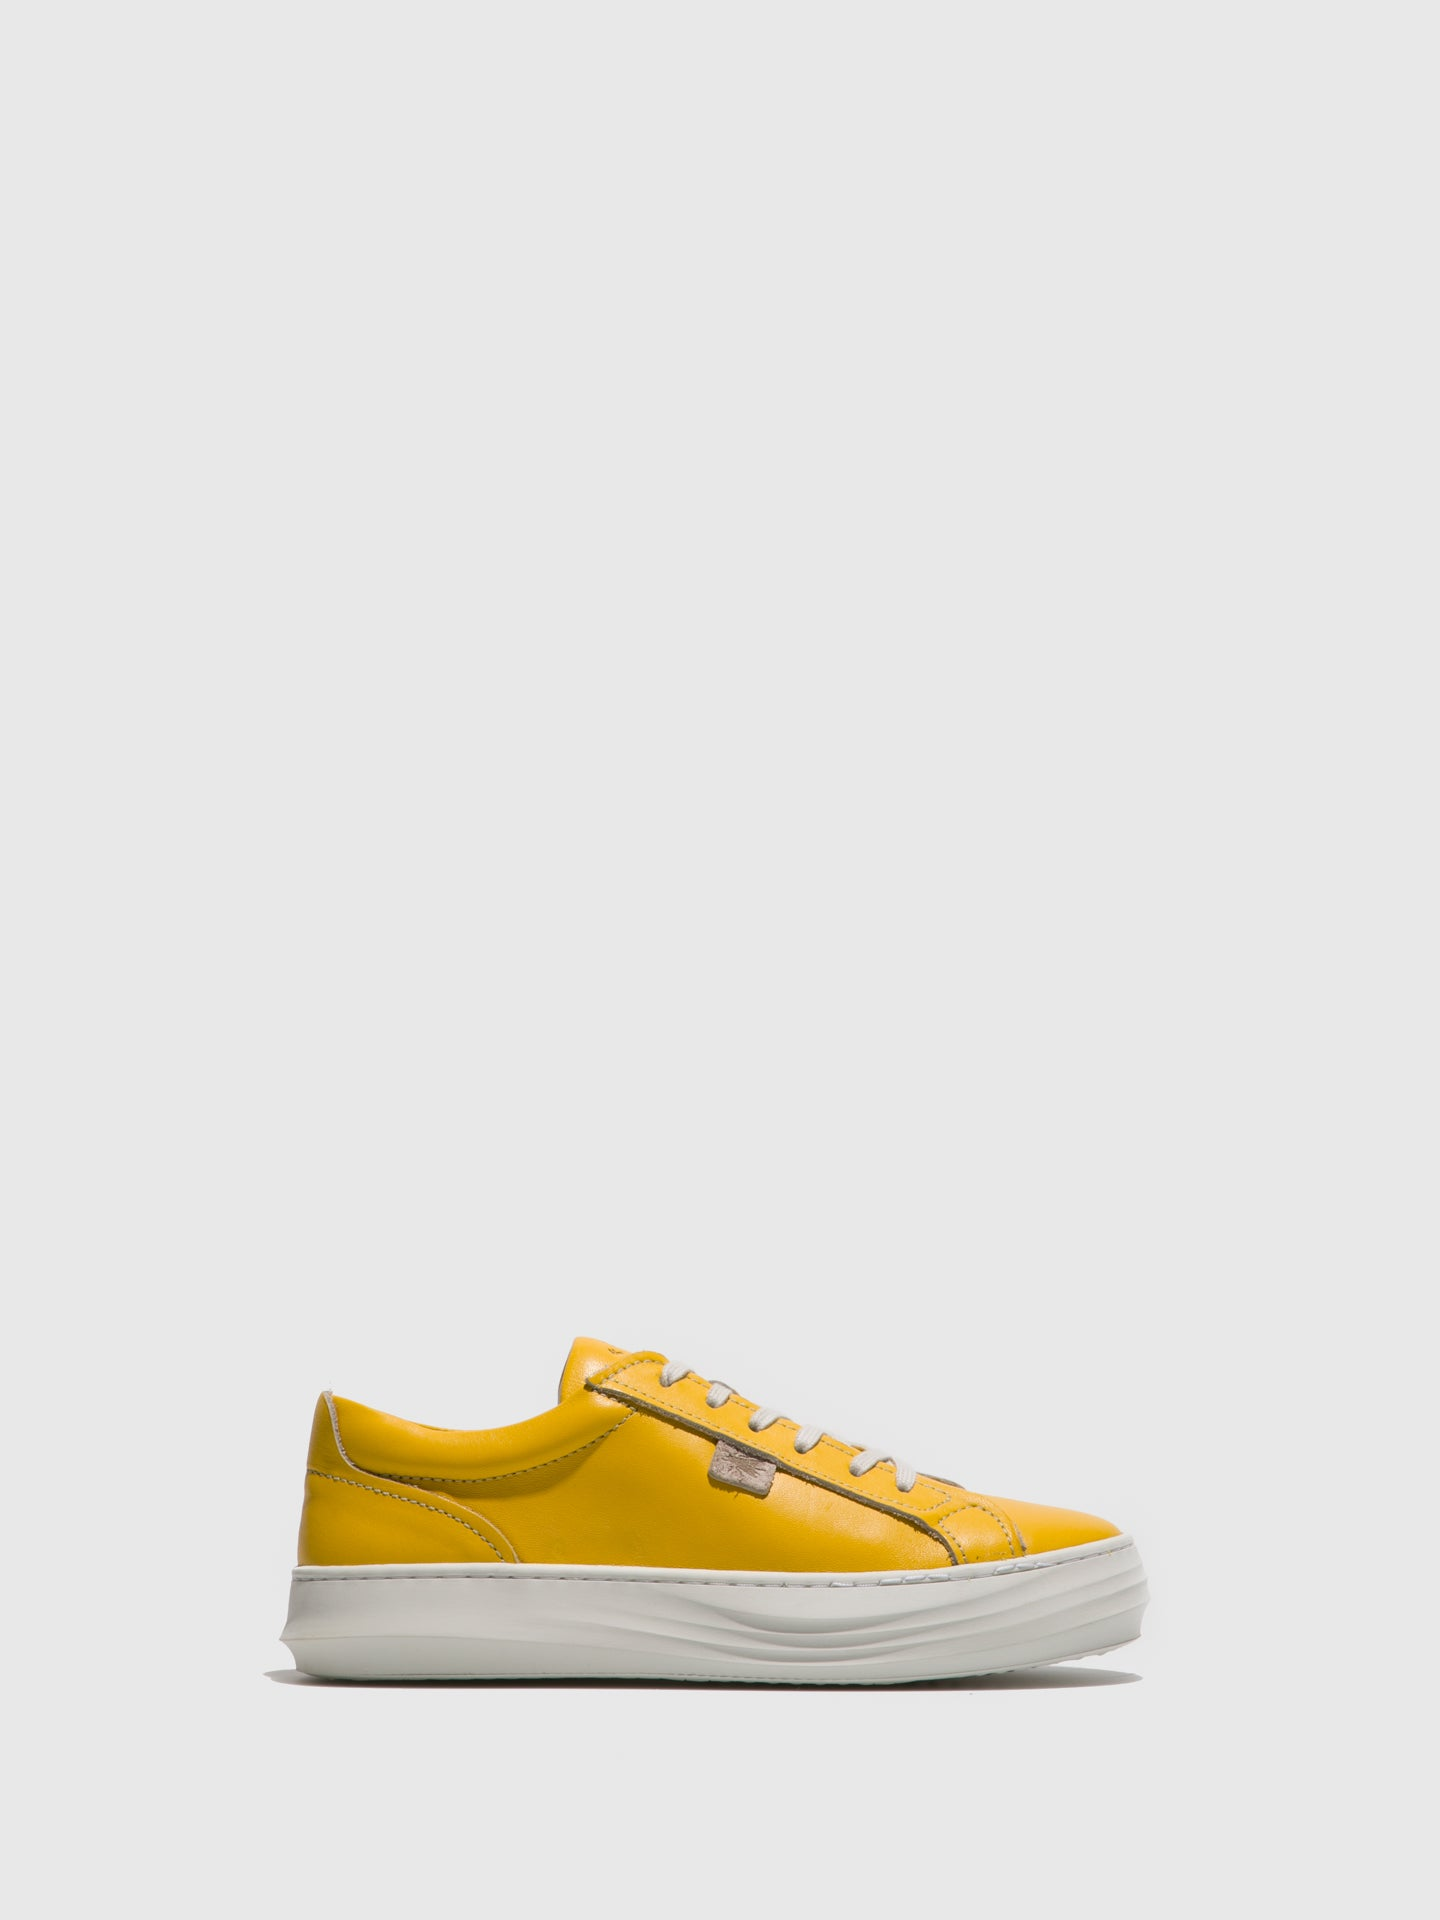 Fly London Yellow Lace-up Shoes